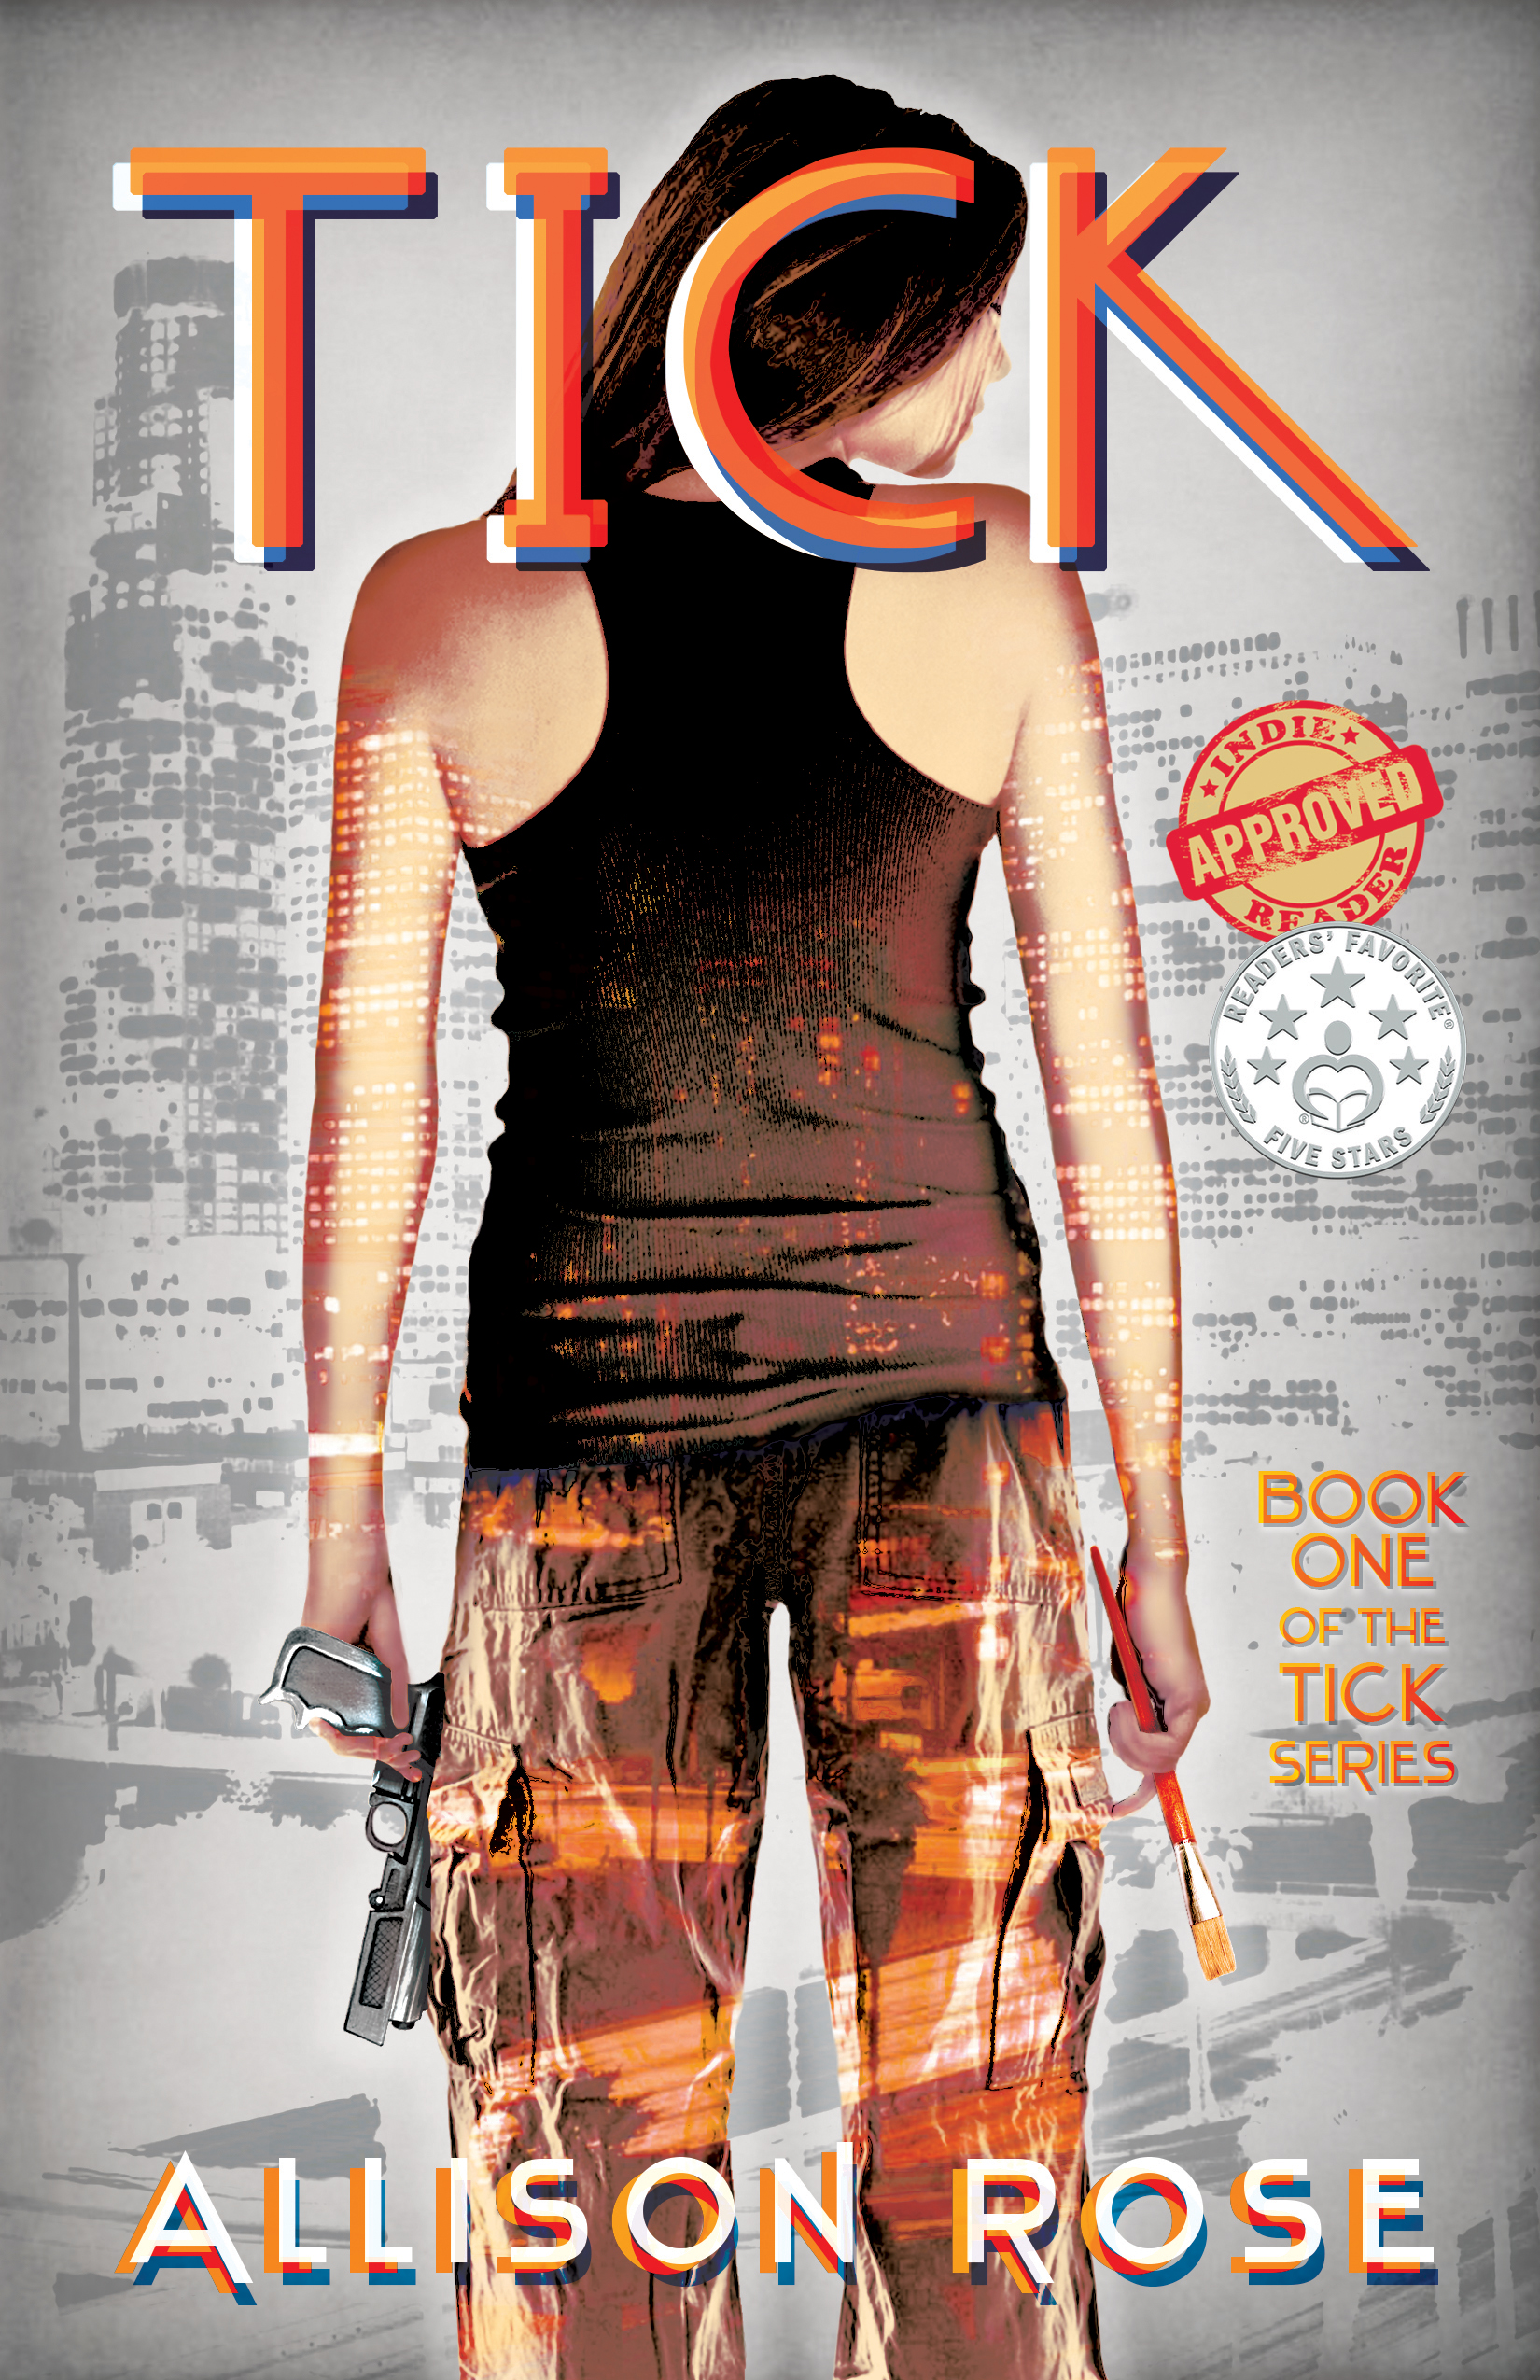 Tick by Allison Rose